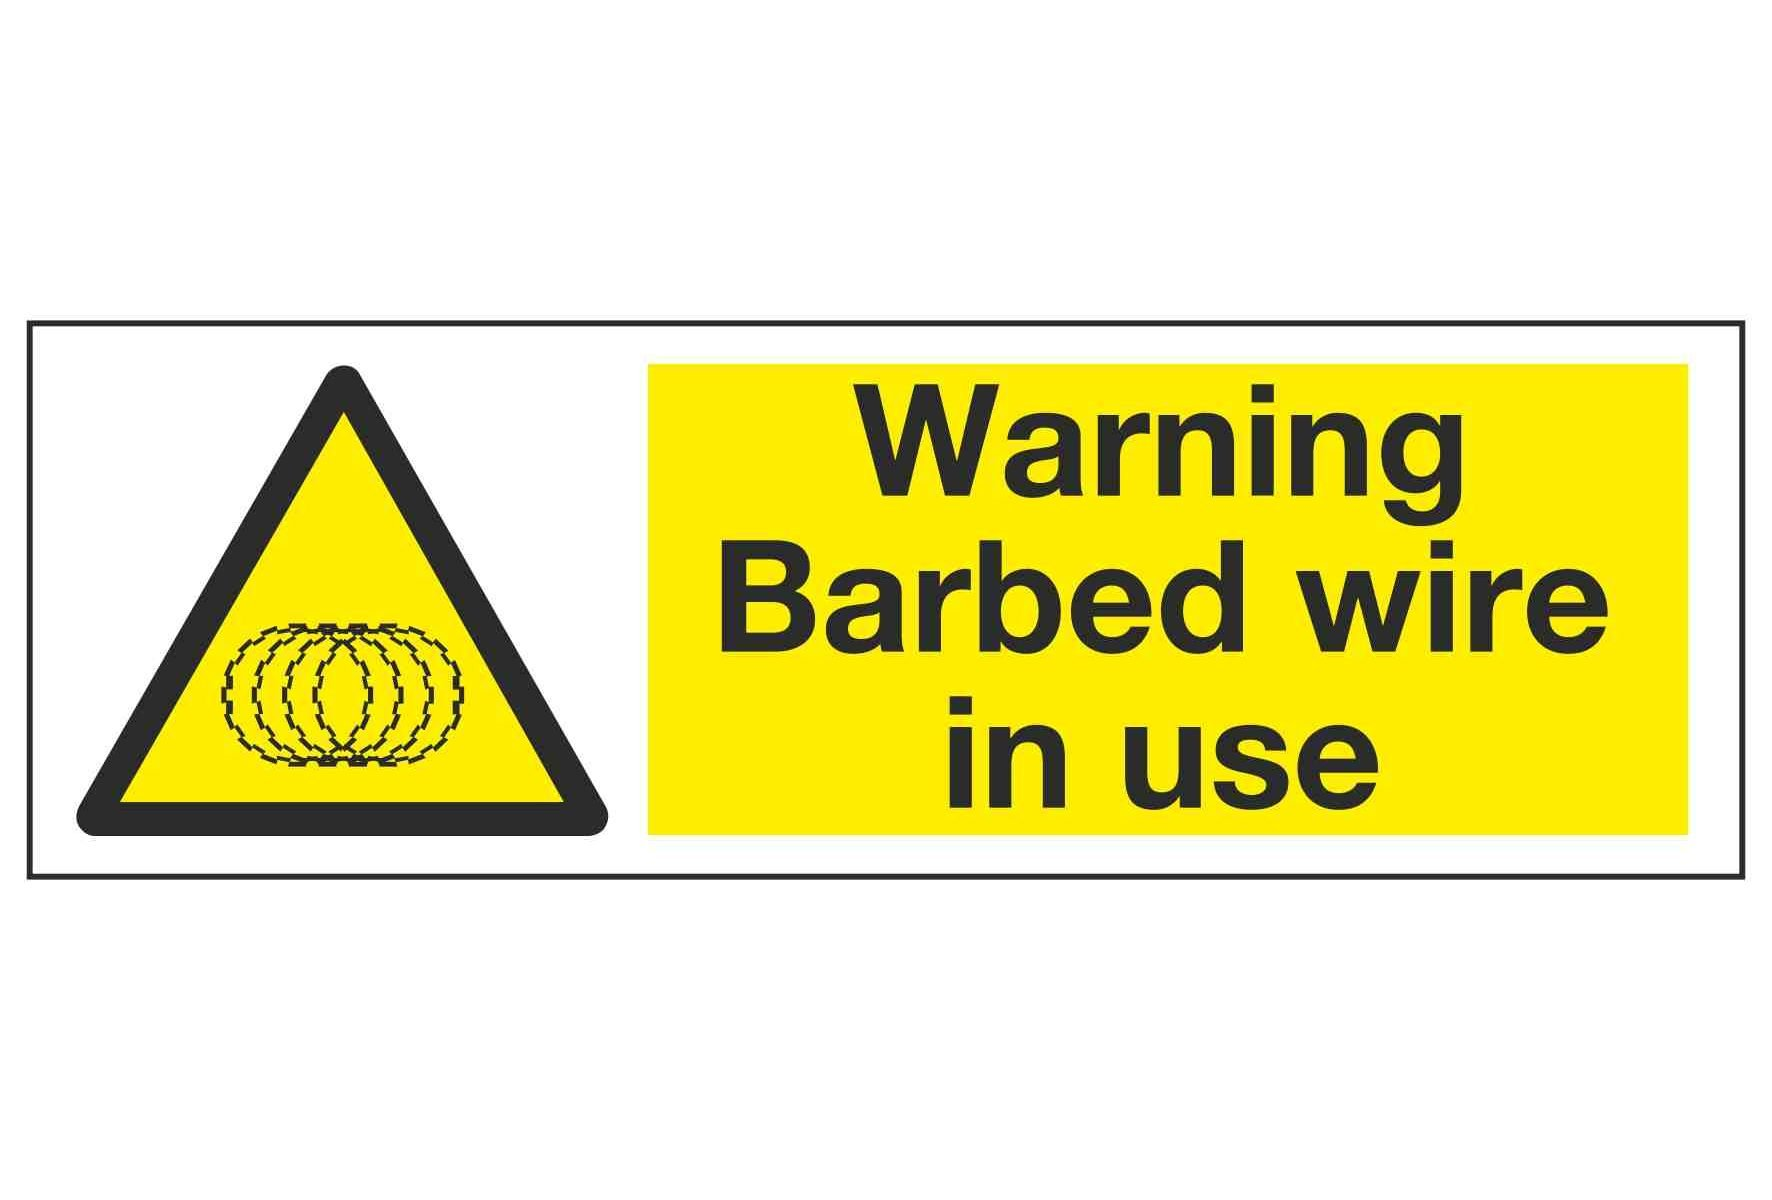 Warning Barbed wire in use